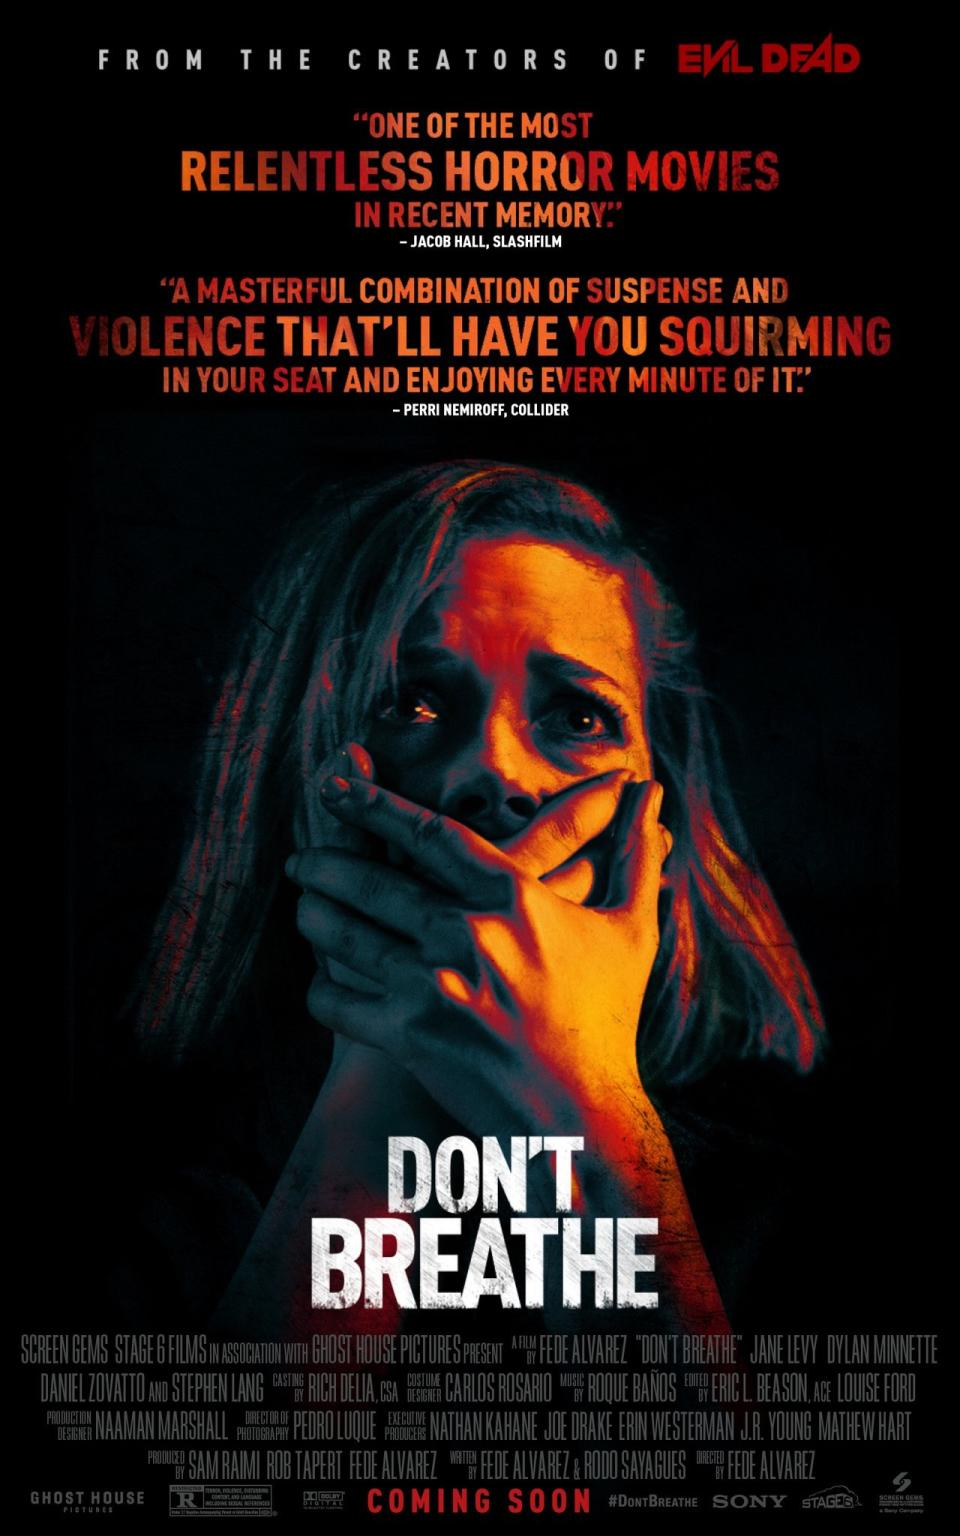 Don't Breathe. Image via IMDB.